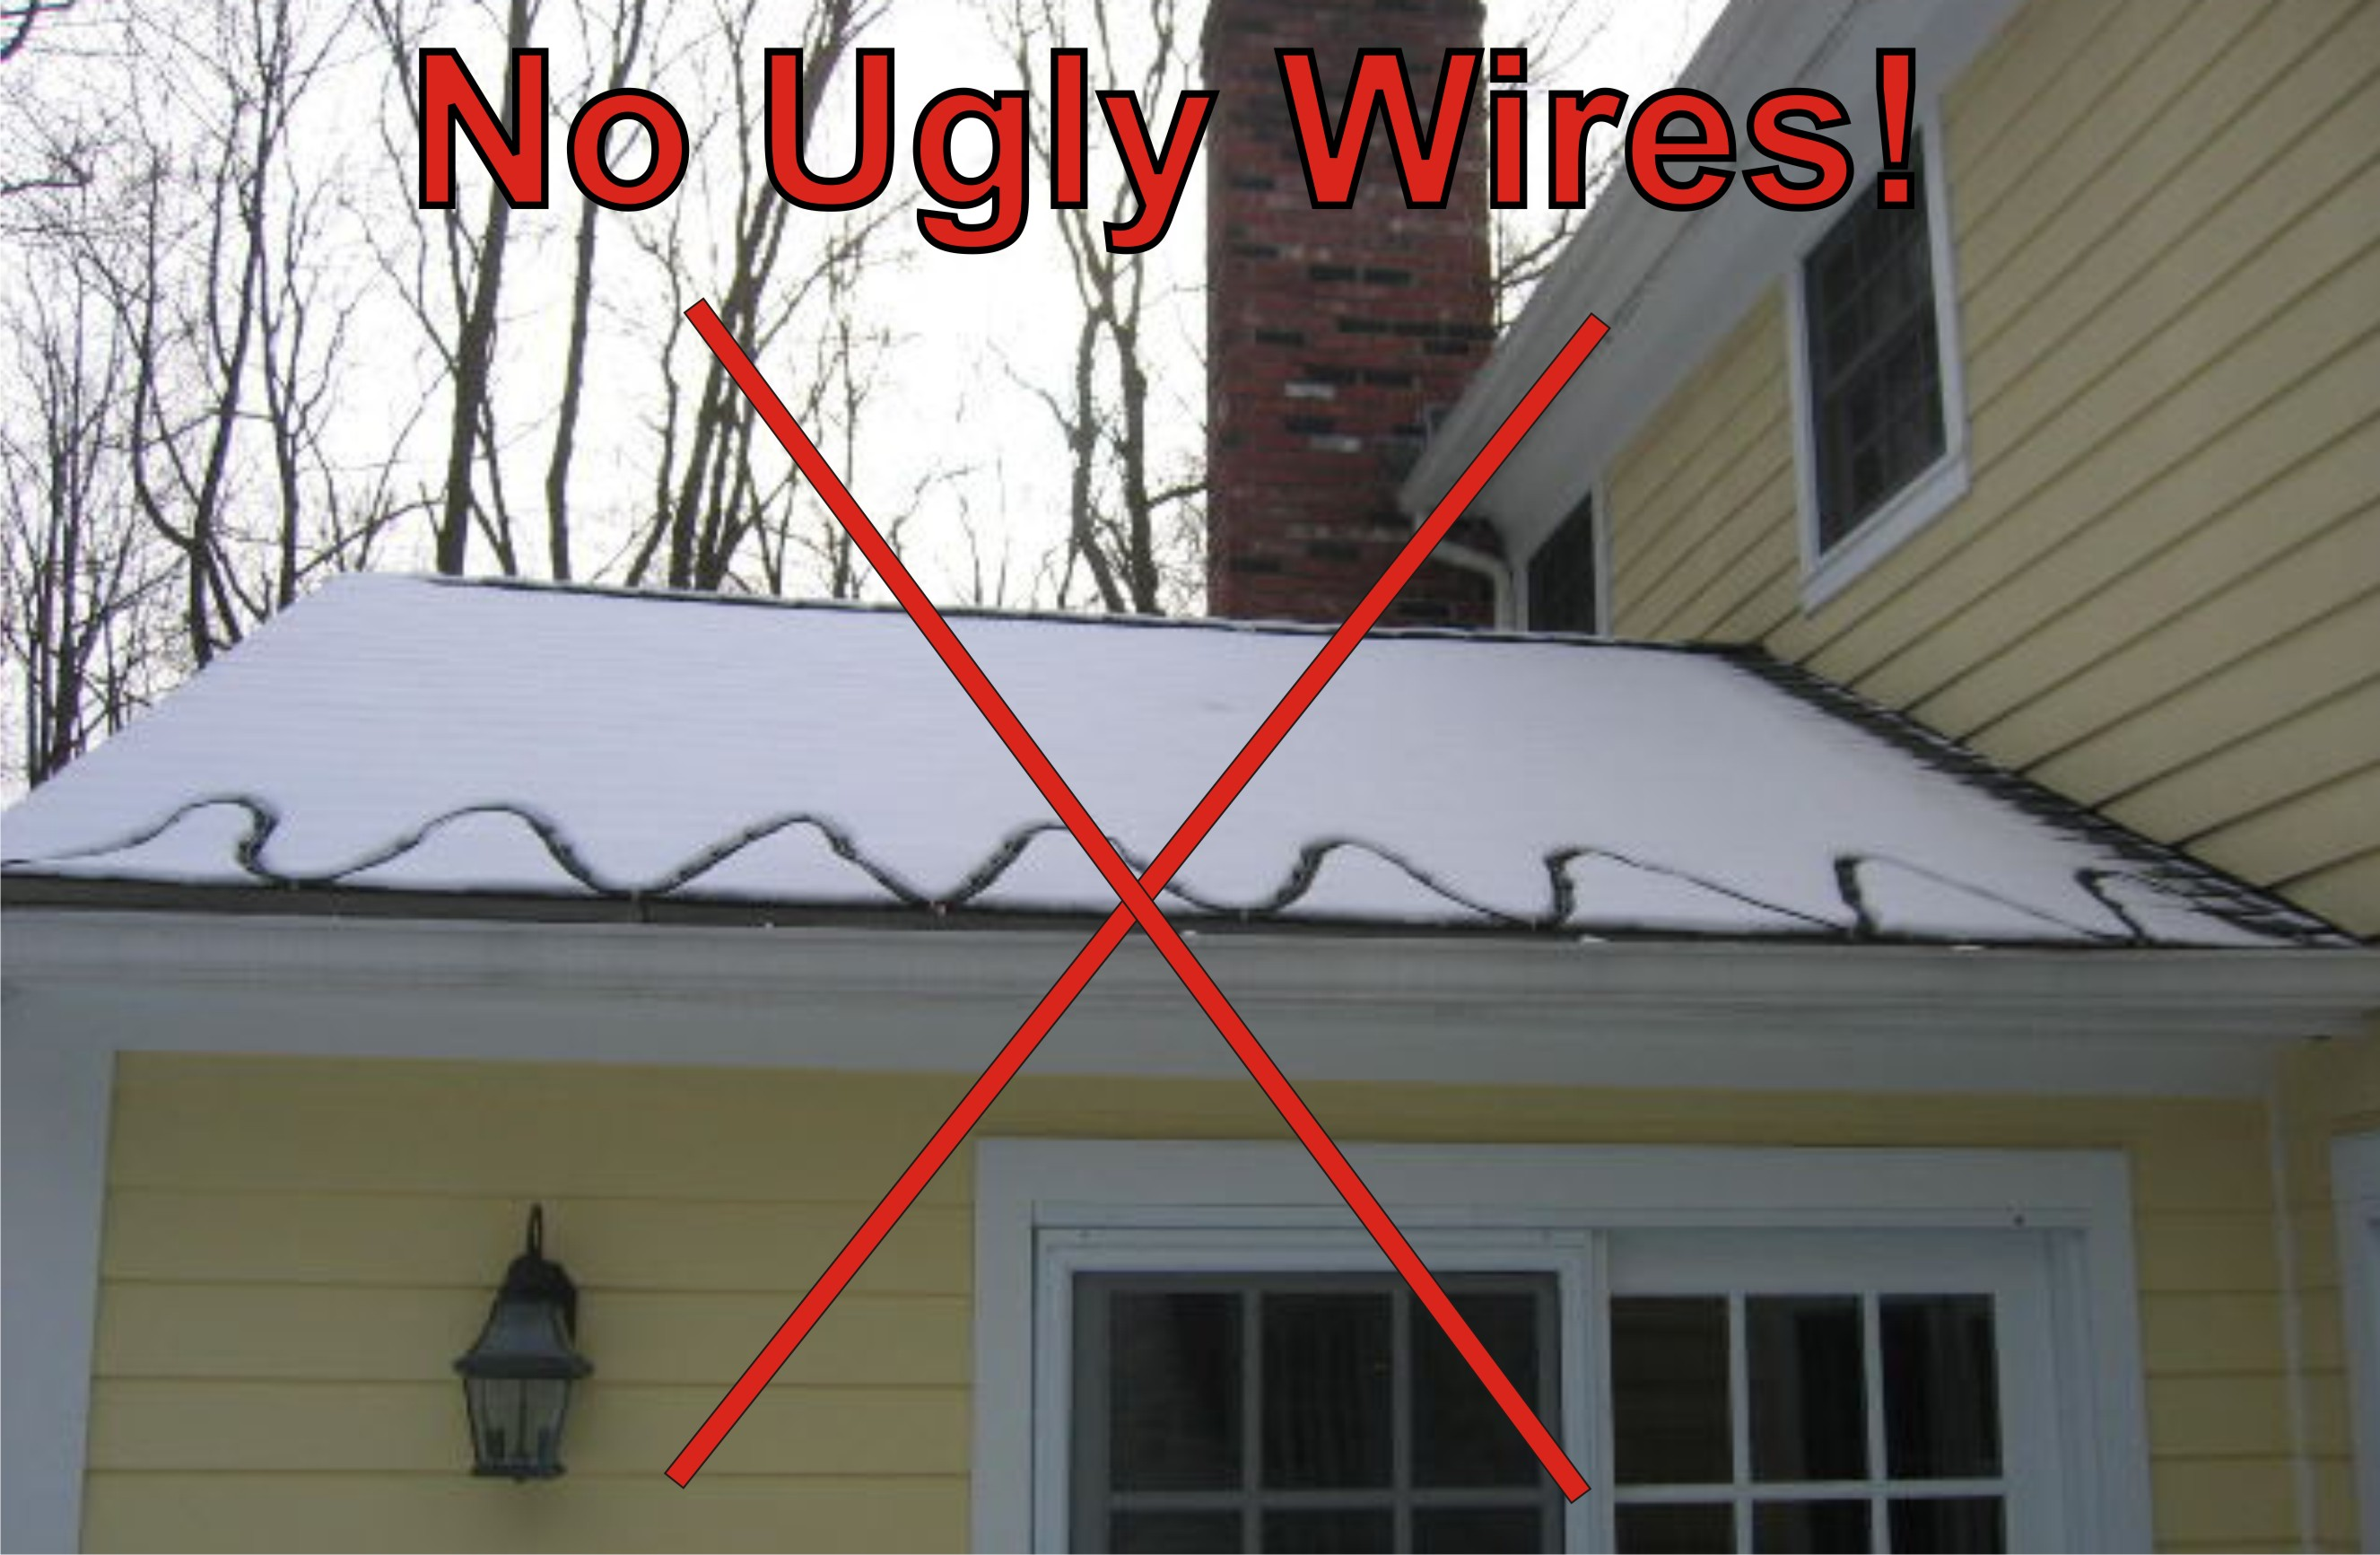 Ugley Wires